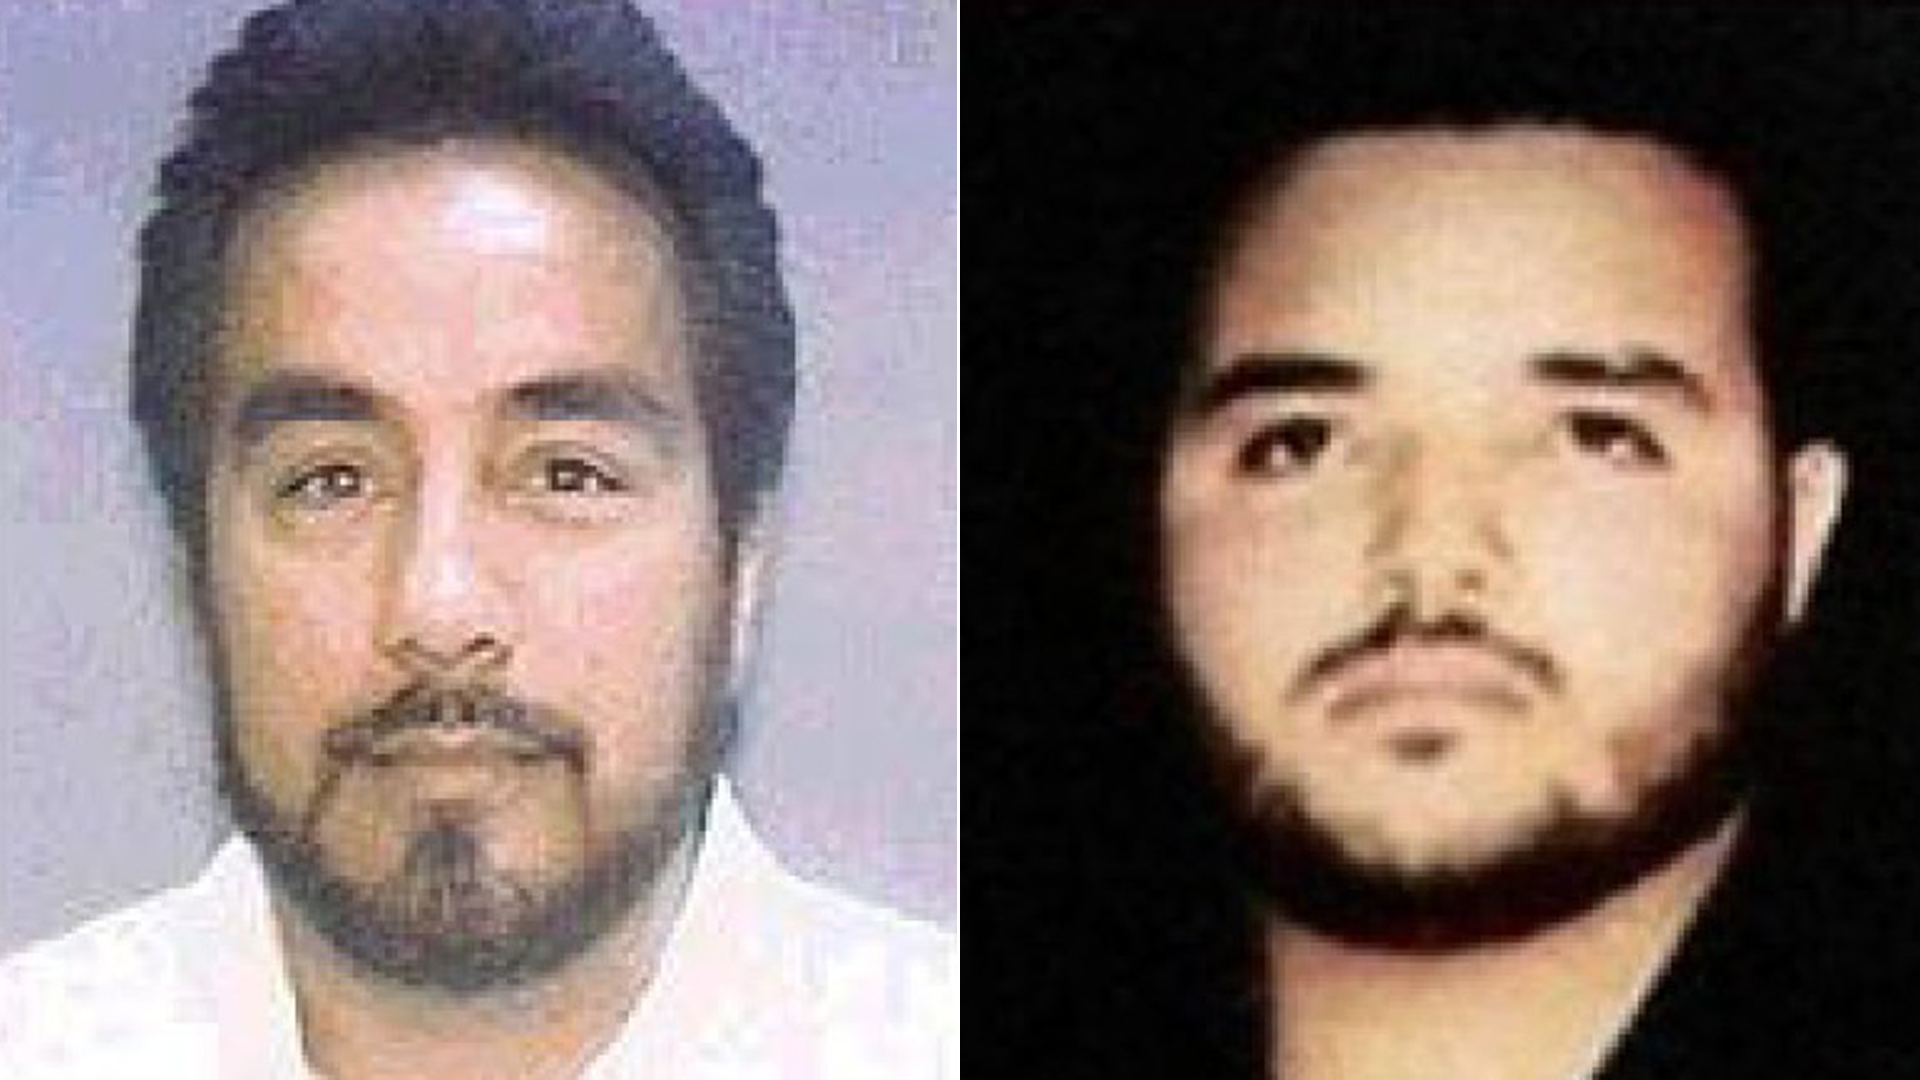 Gustavo Rivera, left, and Ismael Zambada Imperial appear in undated images released by the U.S. Drug Enforcement Administration via the Los Angeles Times.